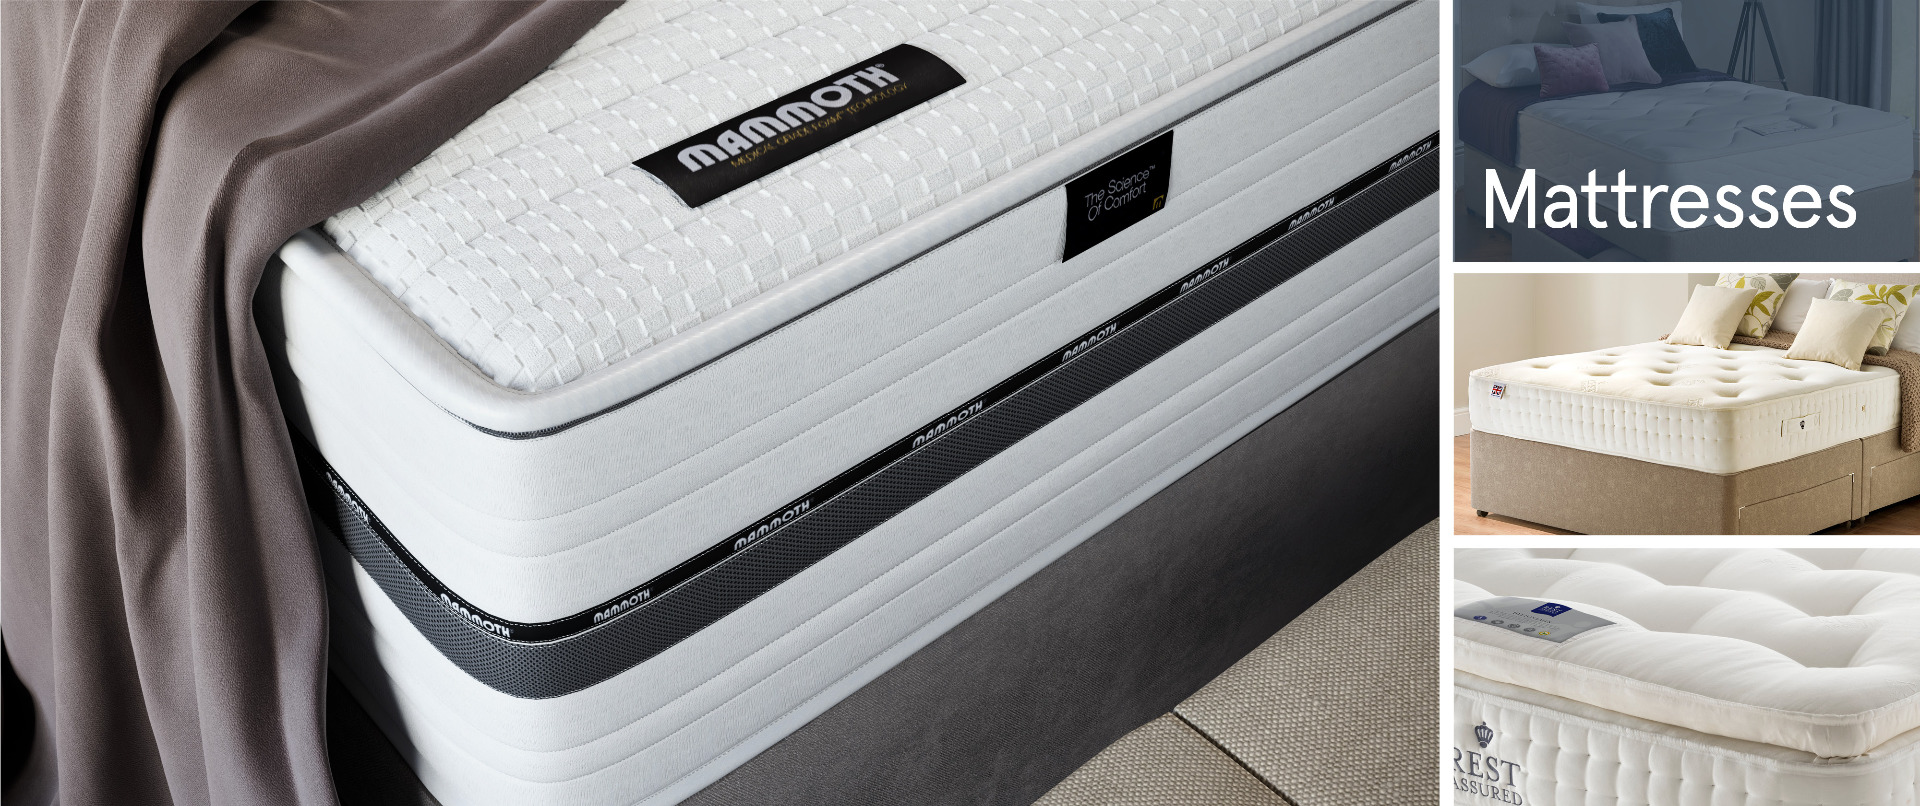 All Mattress Ranges